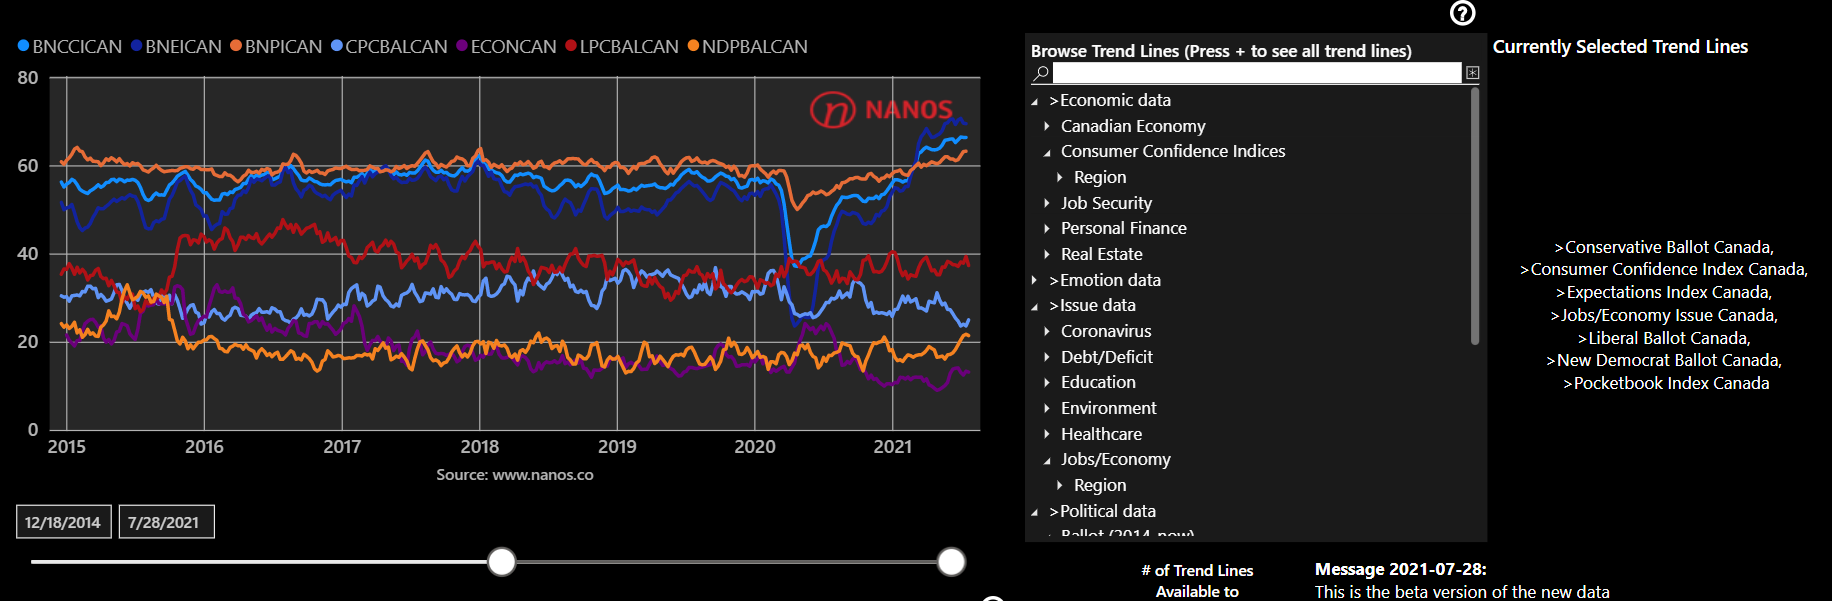 Subscribe to our Data Portal for $5 a month > Access detailed nightly election tracking and over 2000 trendlines on economic, political and policy issues